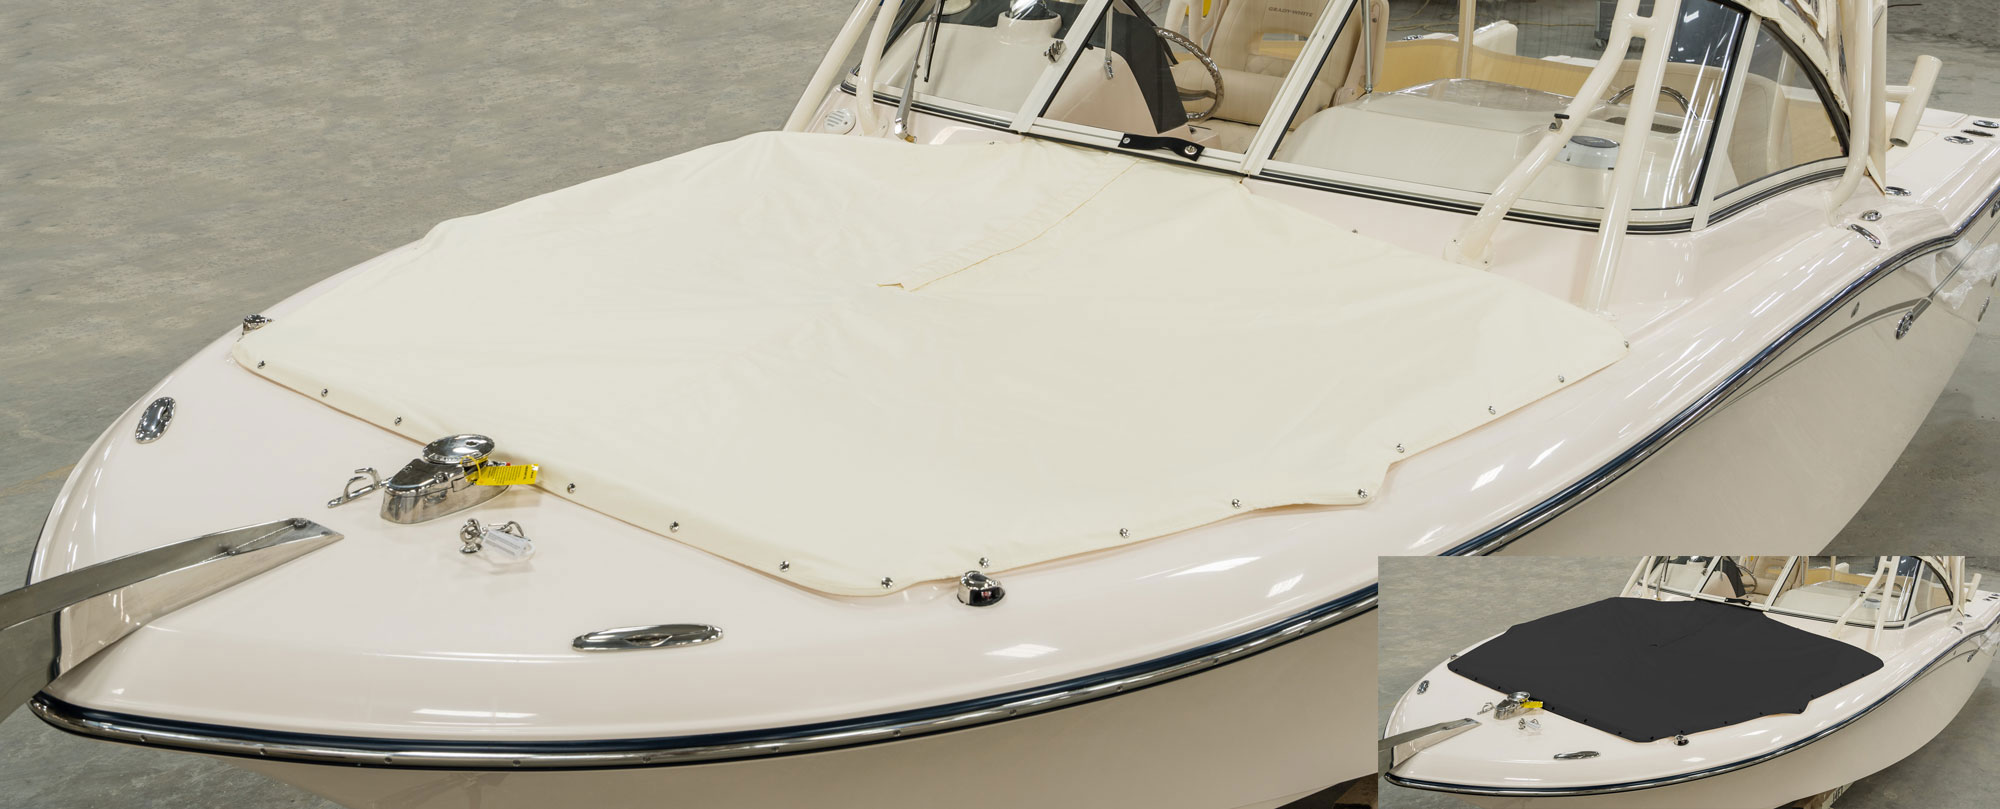 Grady-White Freedom 235 23-foot dual console ivory bow cover